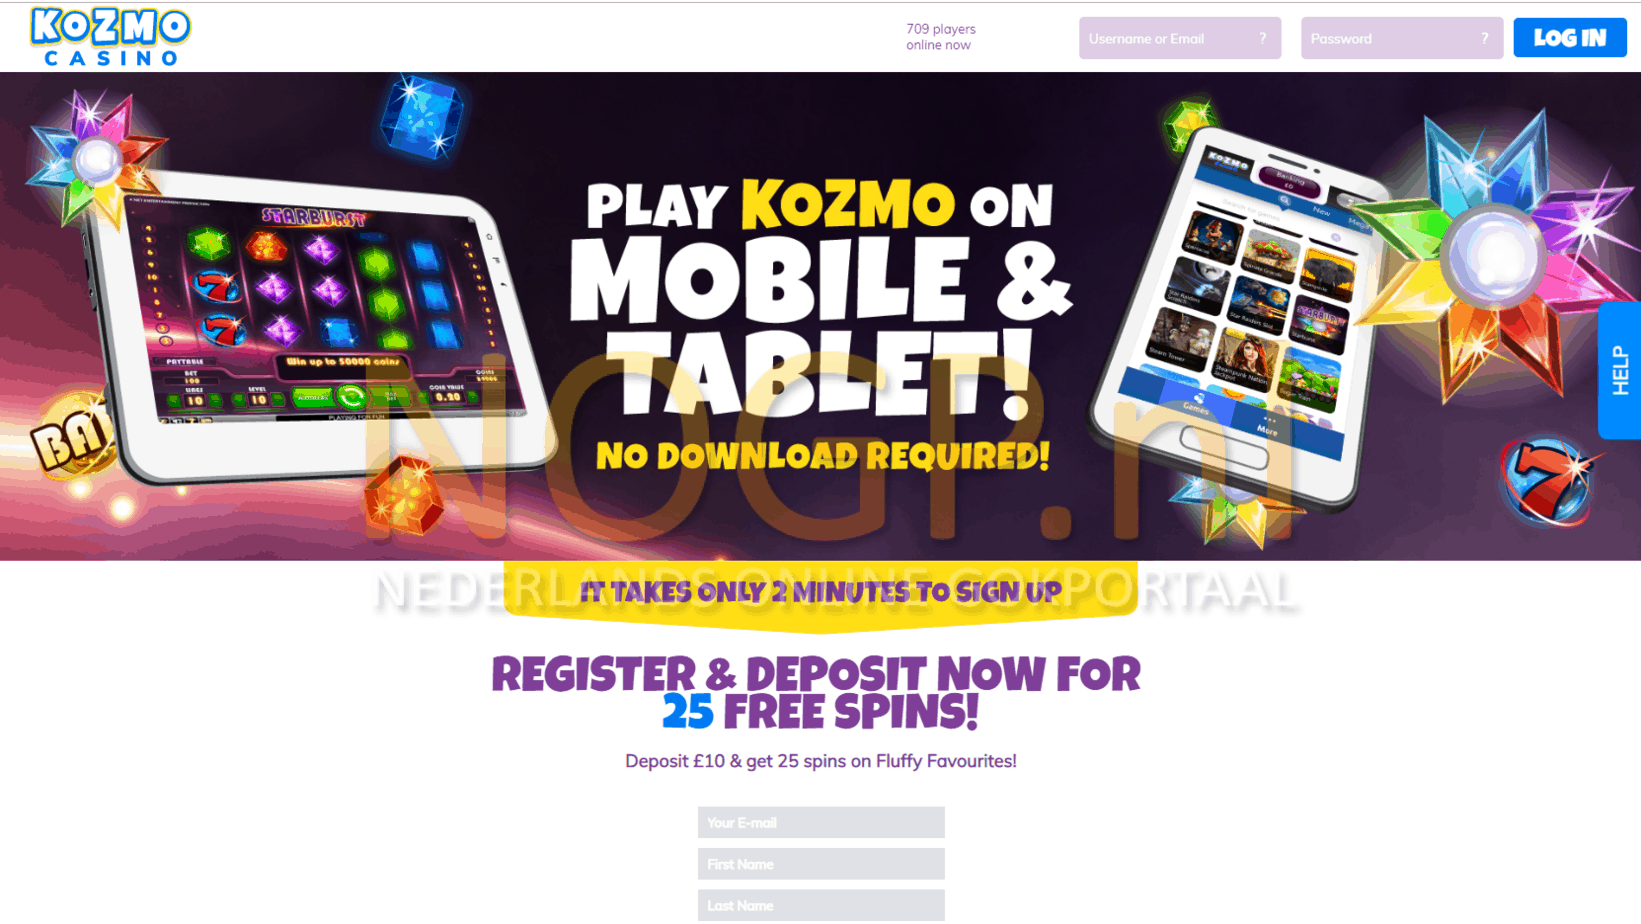 Kozmo Casino homepage screenshot